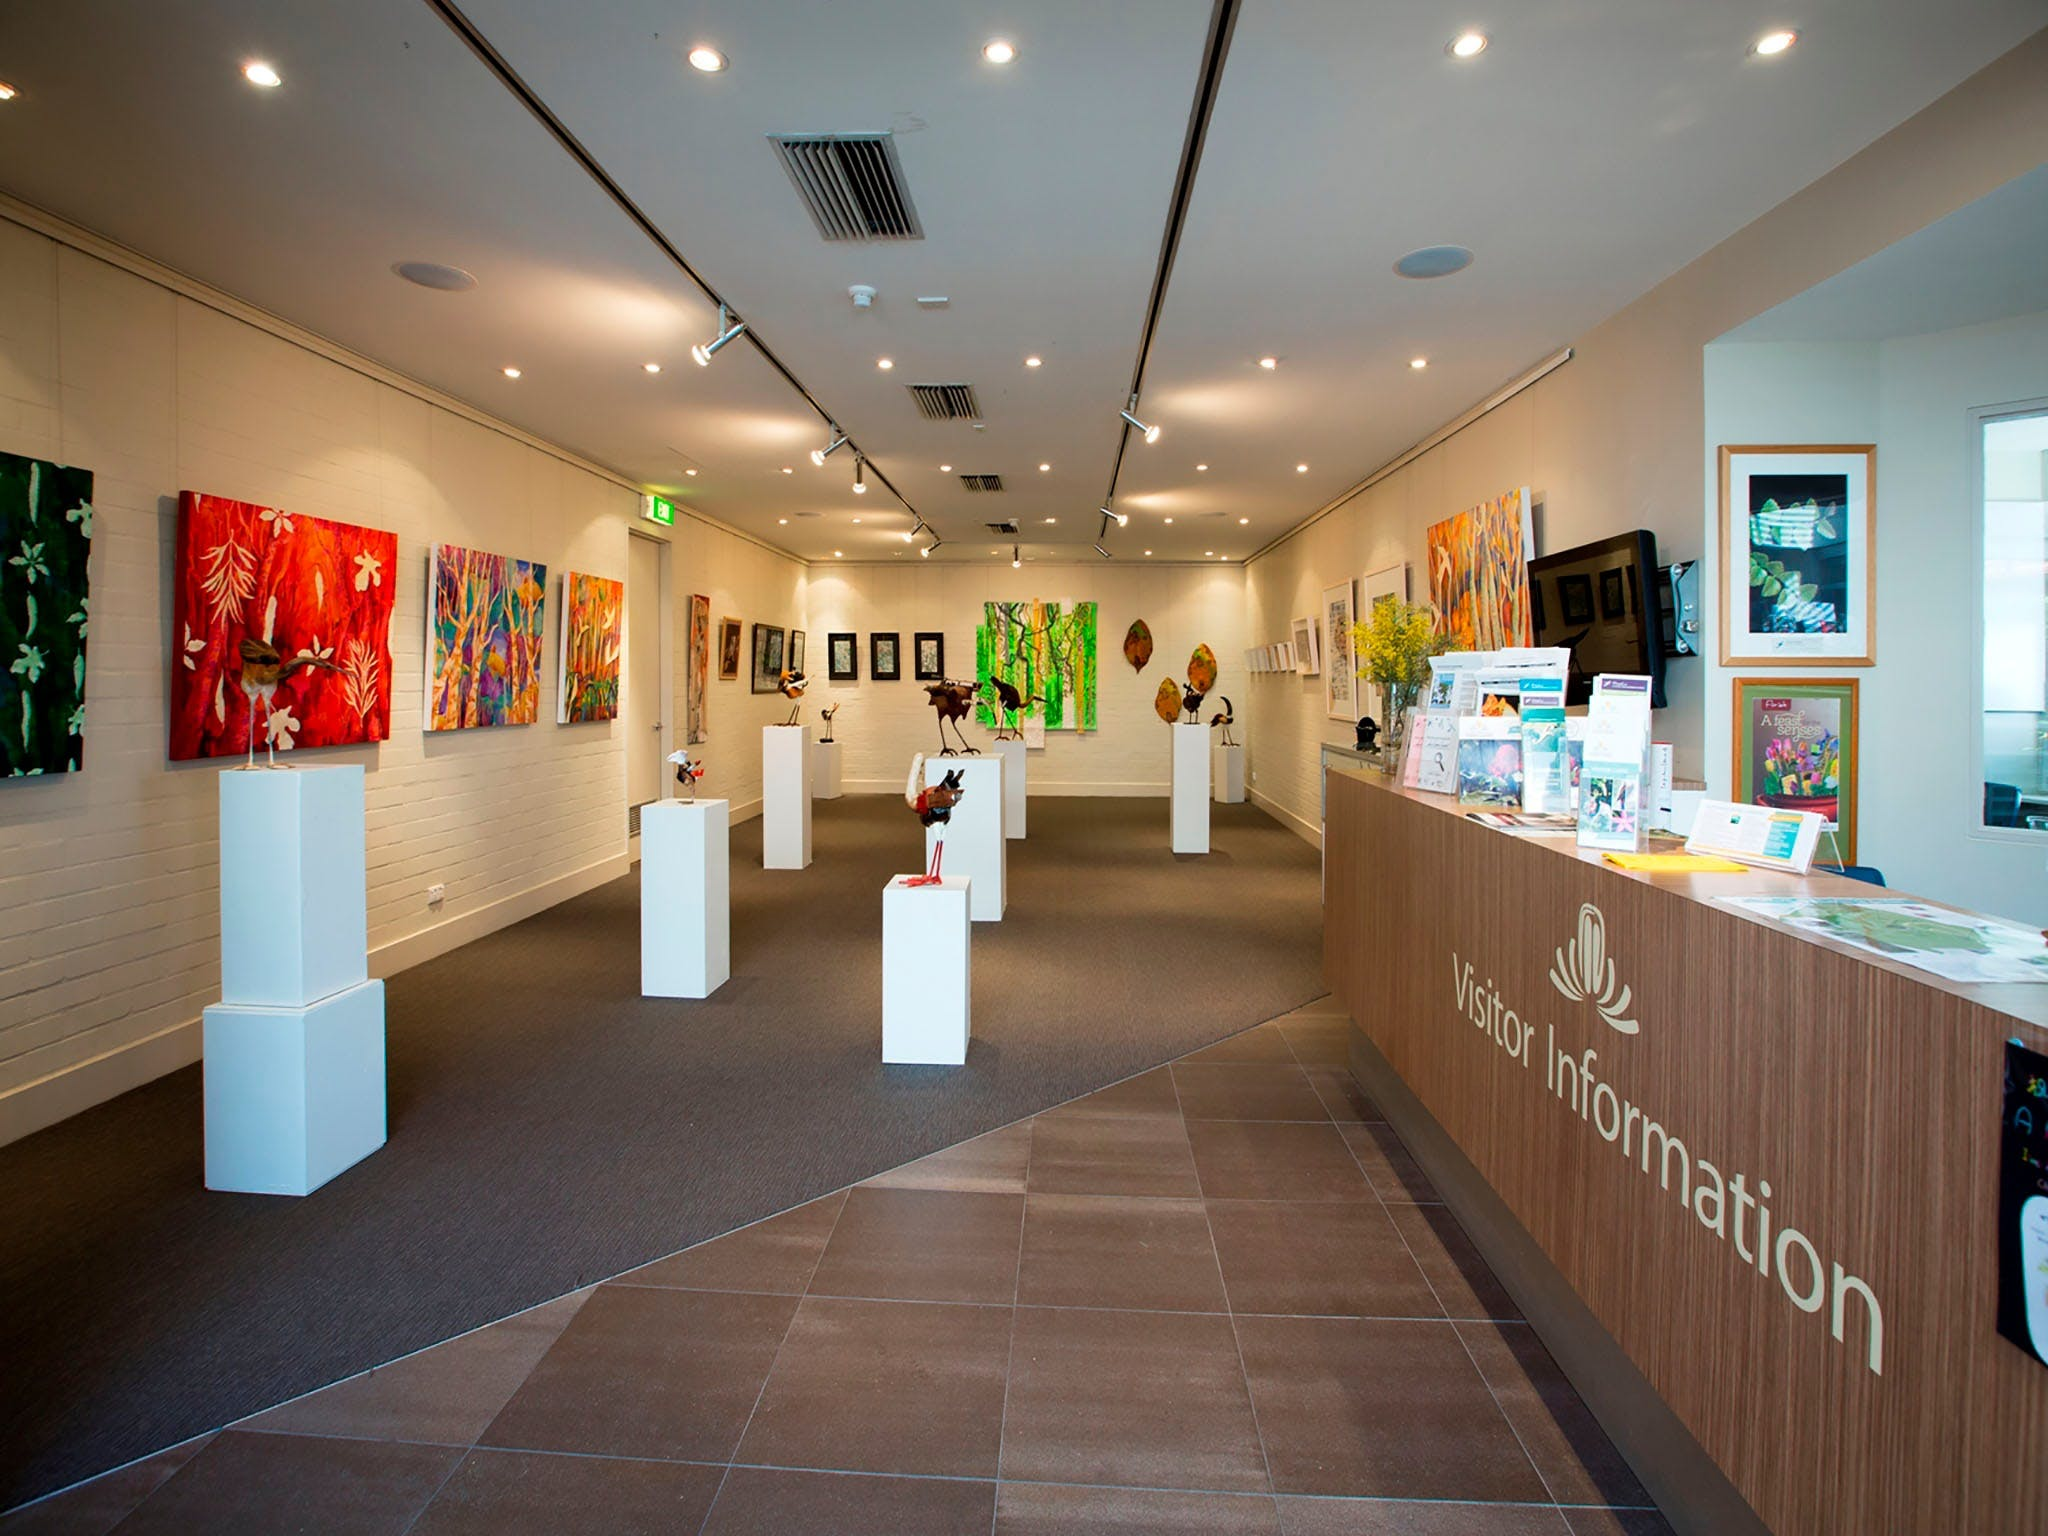 Australian National Botanic Gardens Visitor Centre Gallery - Accommodation Cooktown